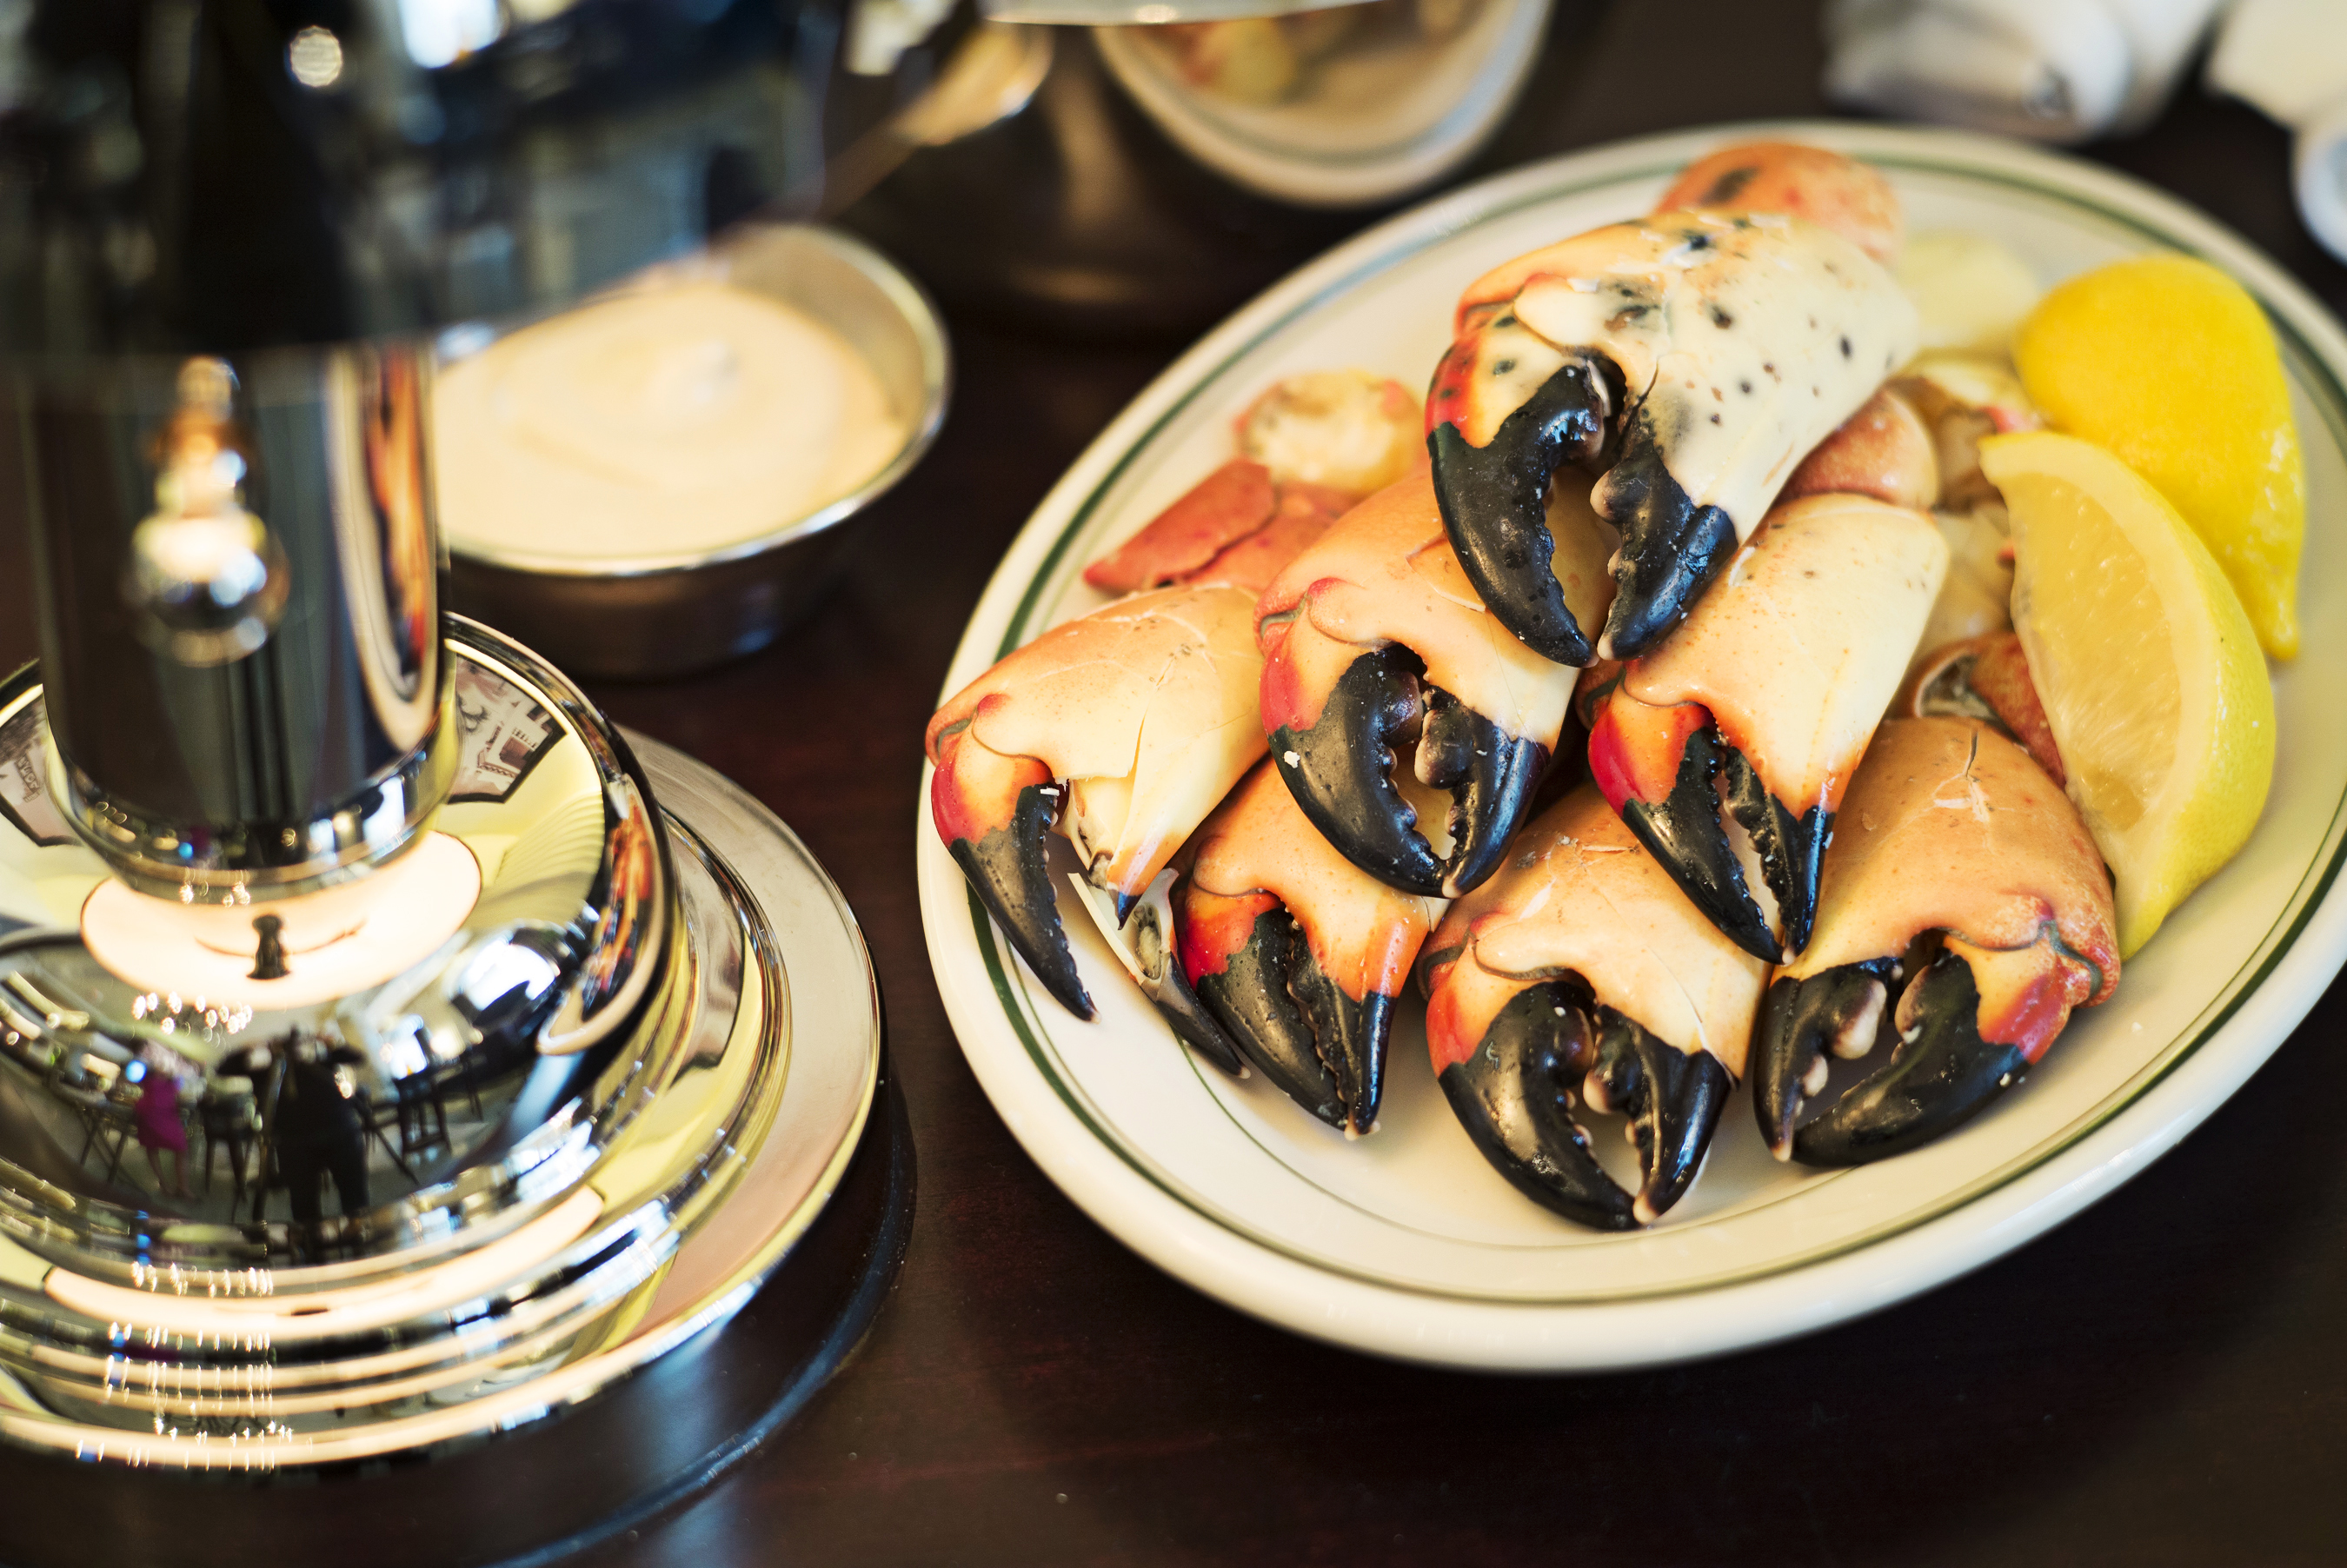 10 Solid Spots to Score Stone Crabs in Miami